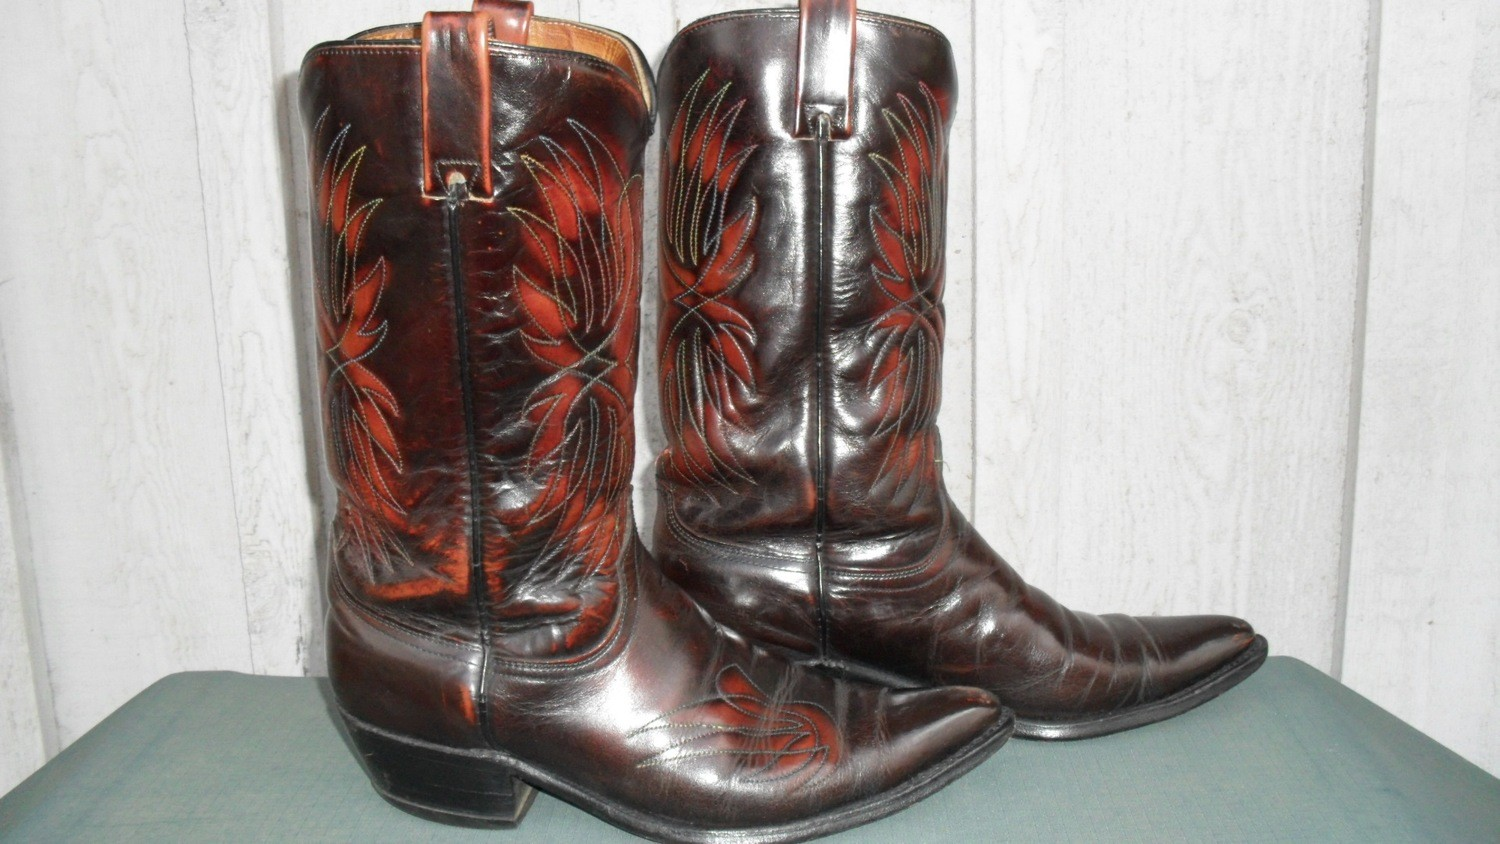 Handsomest Pair of Acme Boots Ever!